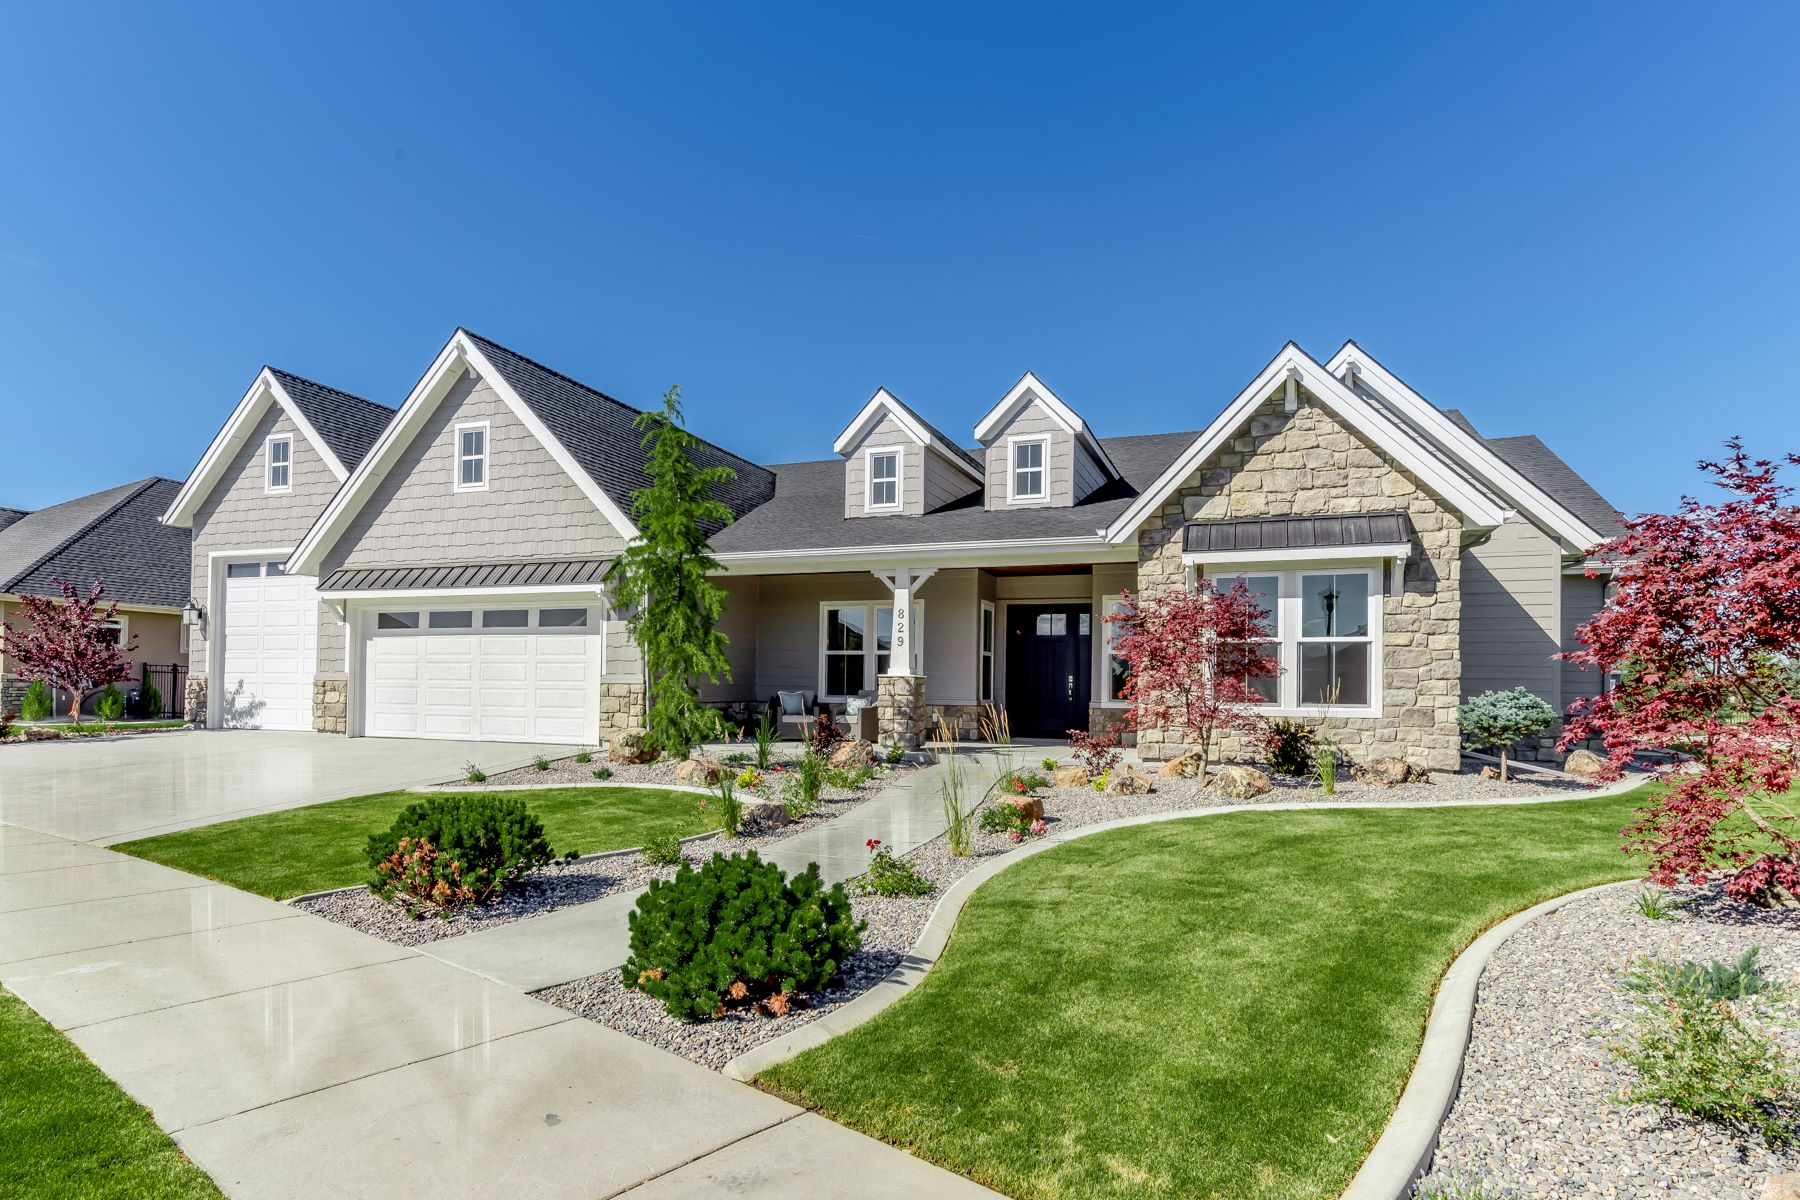 Single Family Homes for Active at 4717 Salix Court, Meridian 4717 W Salix Ct Meridian, Idaho 83646 United States